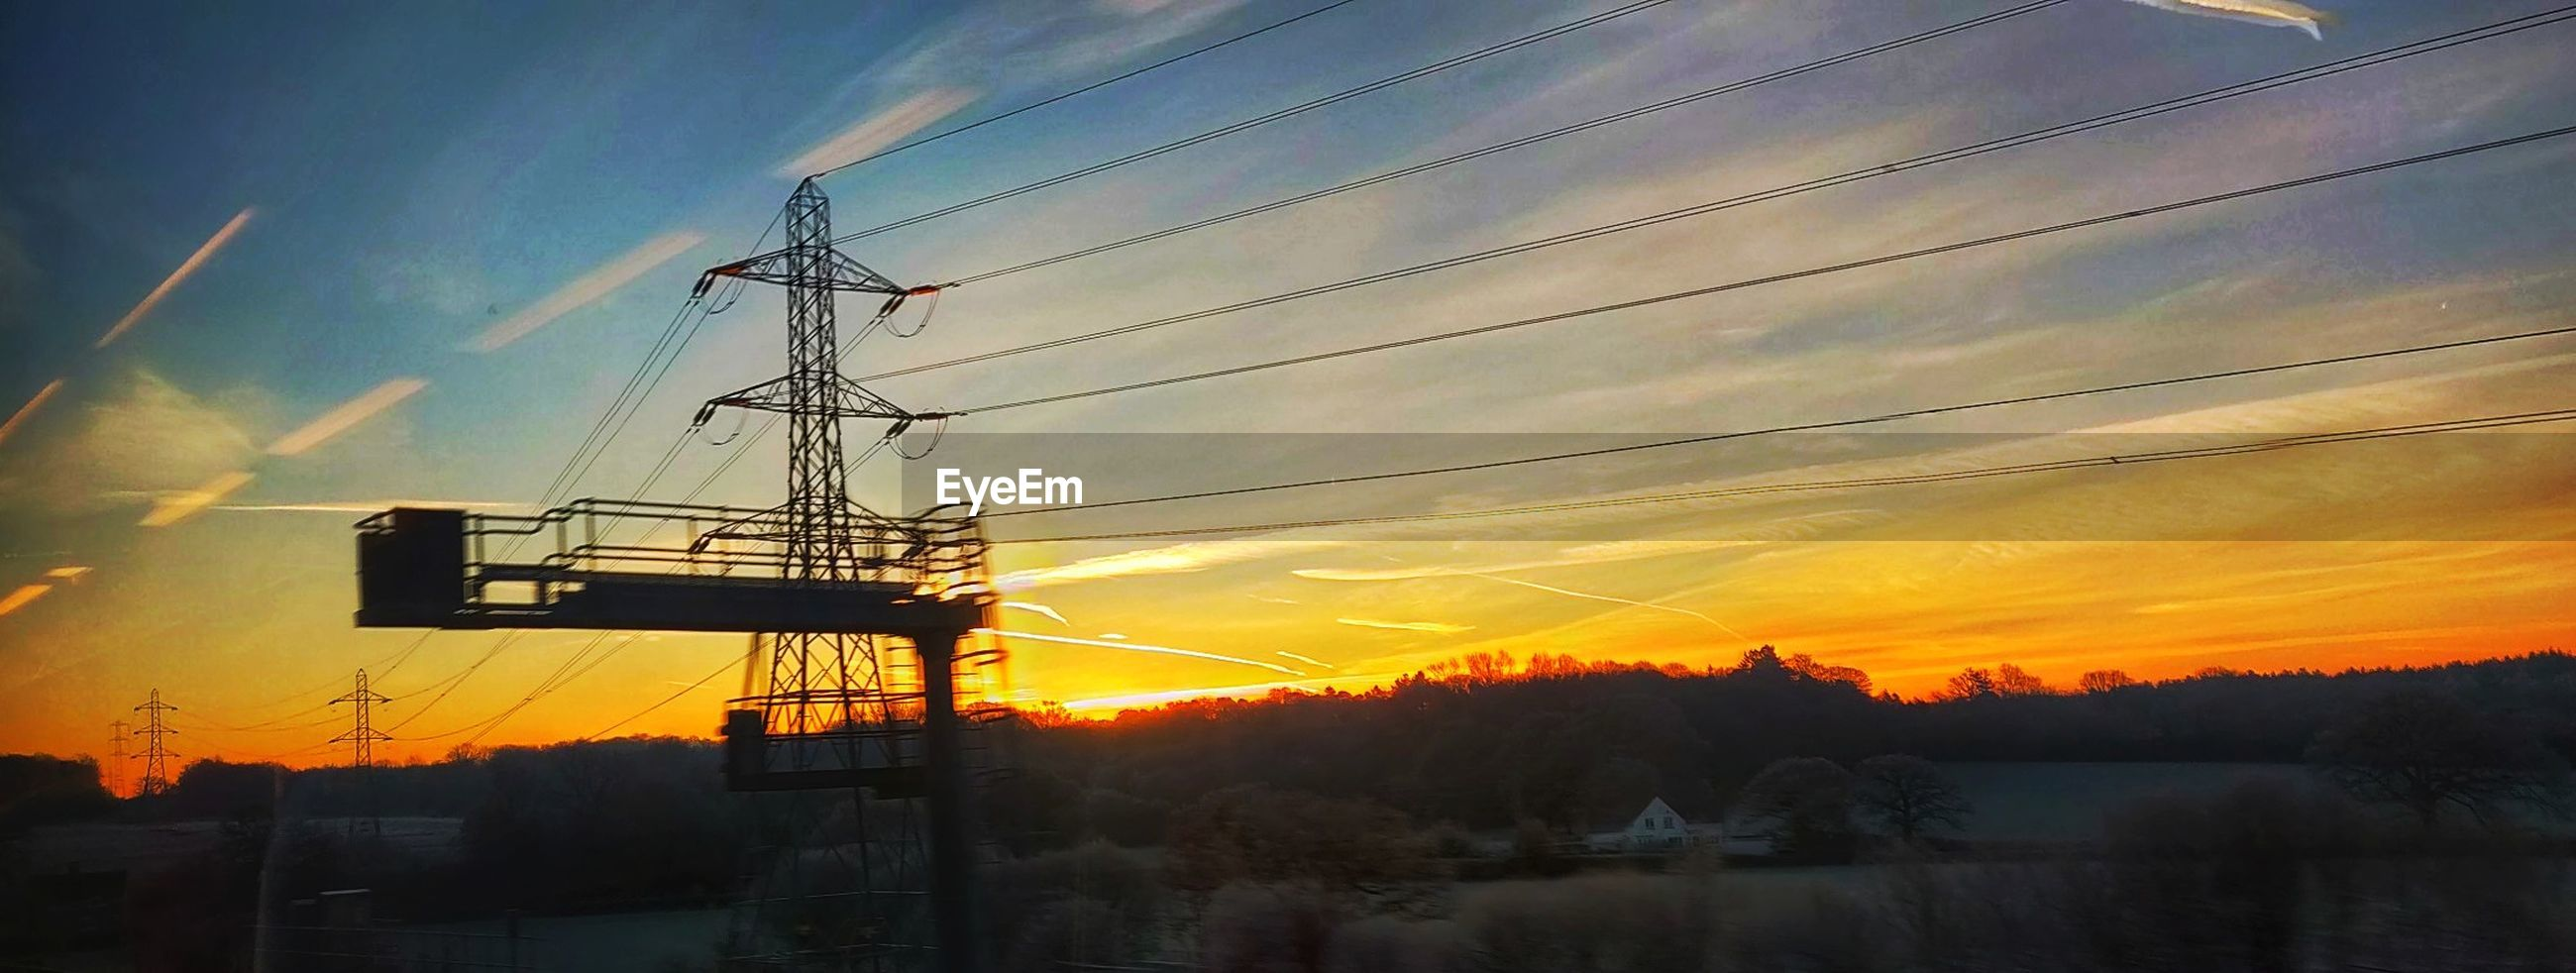 sky, sunset, cloud - sky, silhouette, orange color, nature, beauty in nature, no people, cable, scenics - nature, technology, fuel and power generation, tranquil scene, outdoors, power line, electricity pylon, tranquility, tree, plant, architecture, electricity, power supply